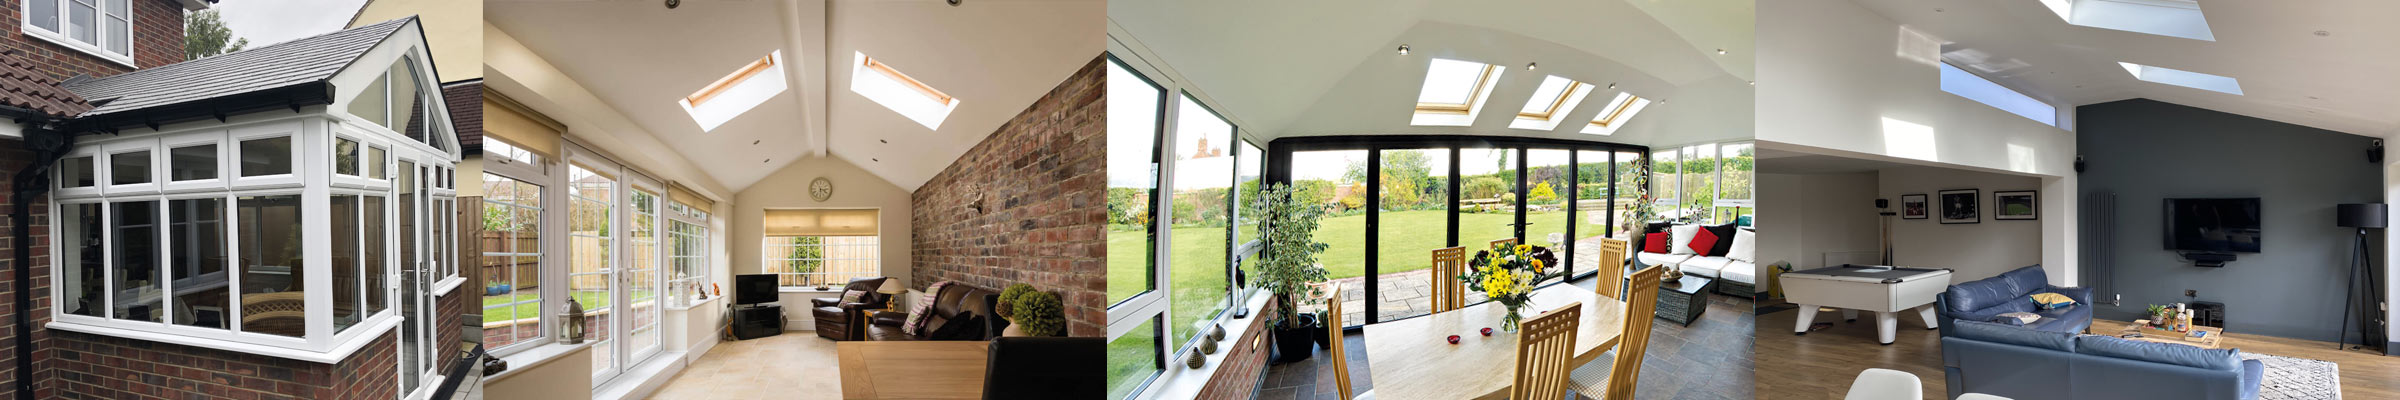 Entensions, & Orangeries in Essex - Sovereign Home Improvements (5)